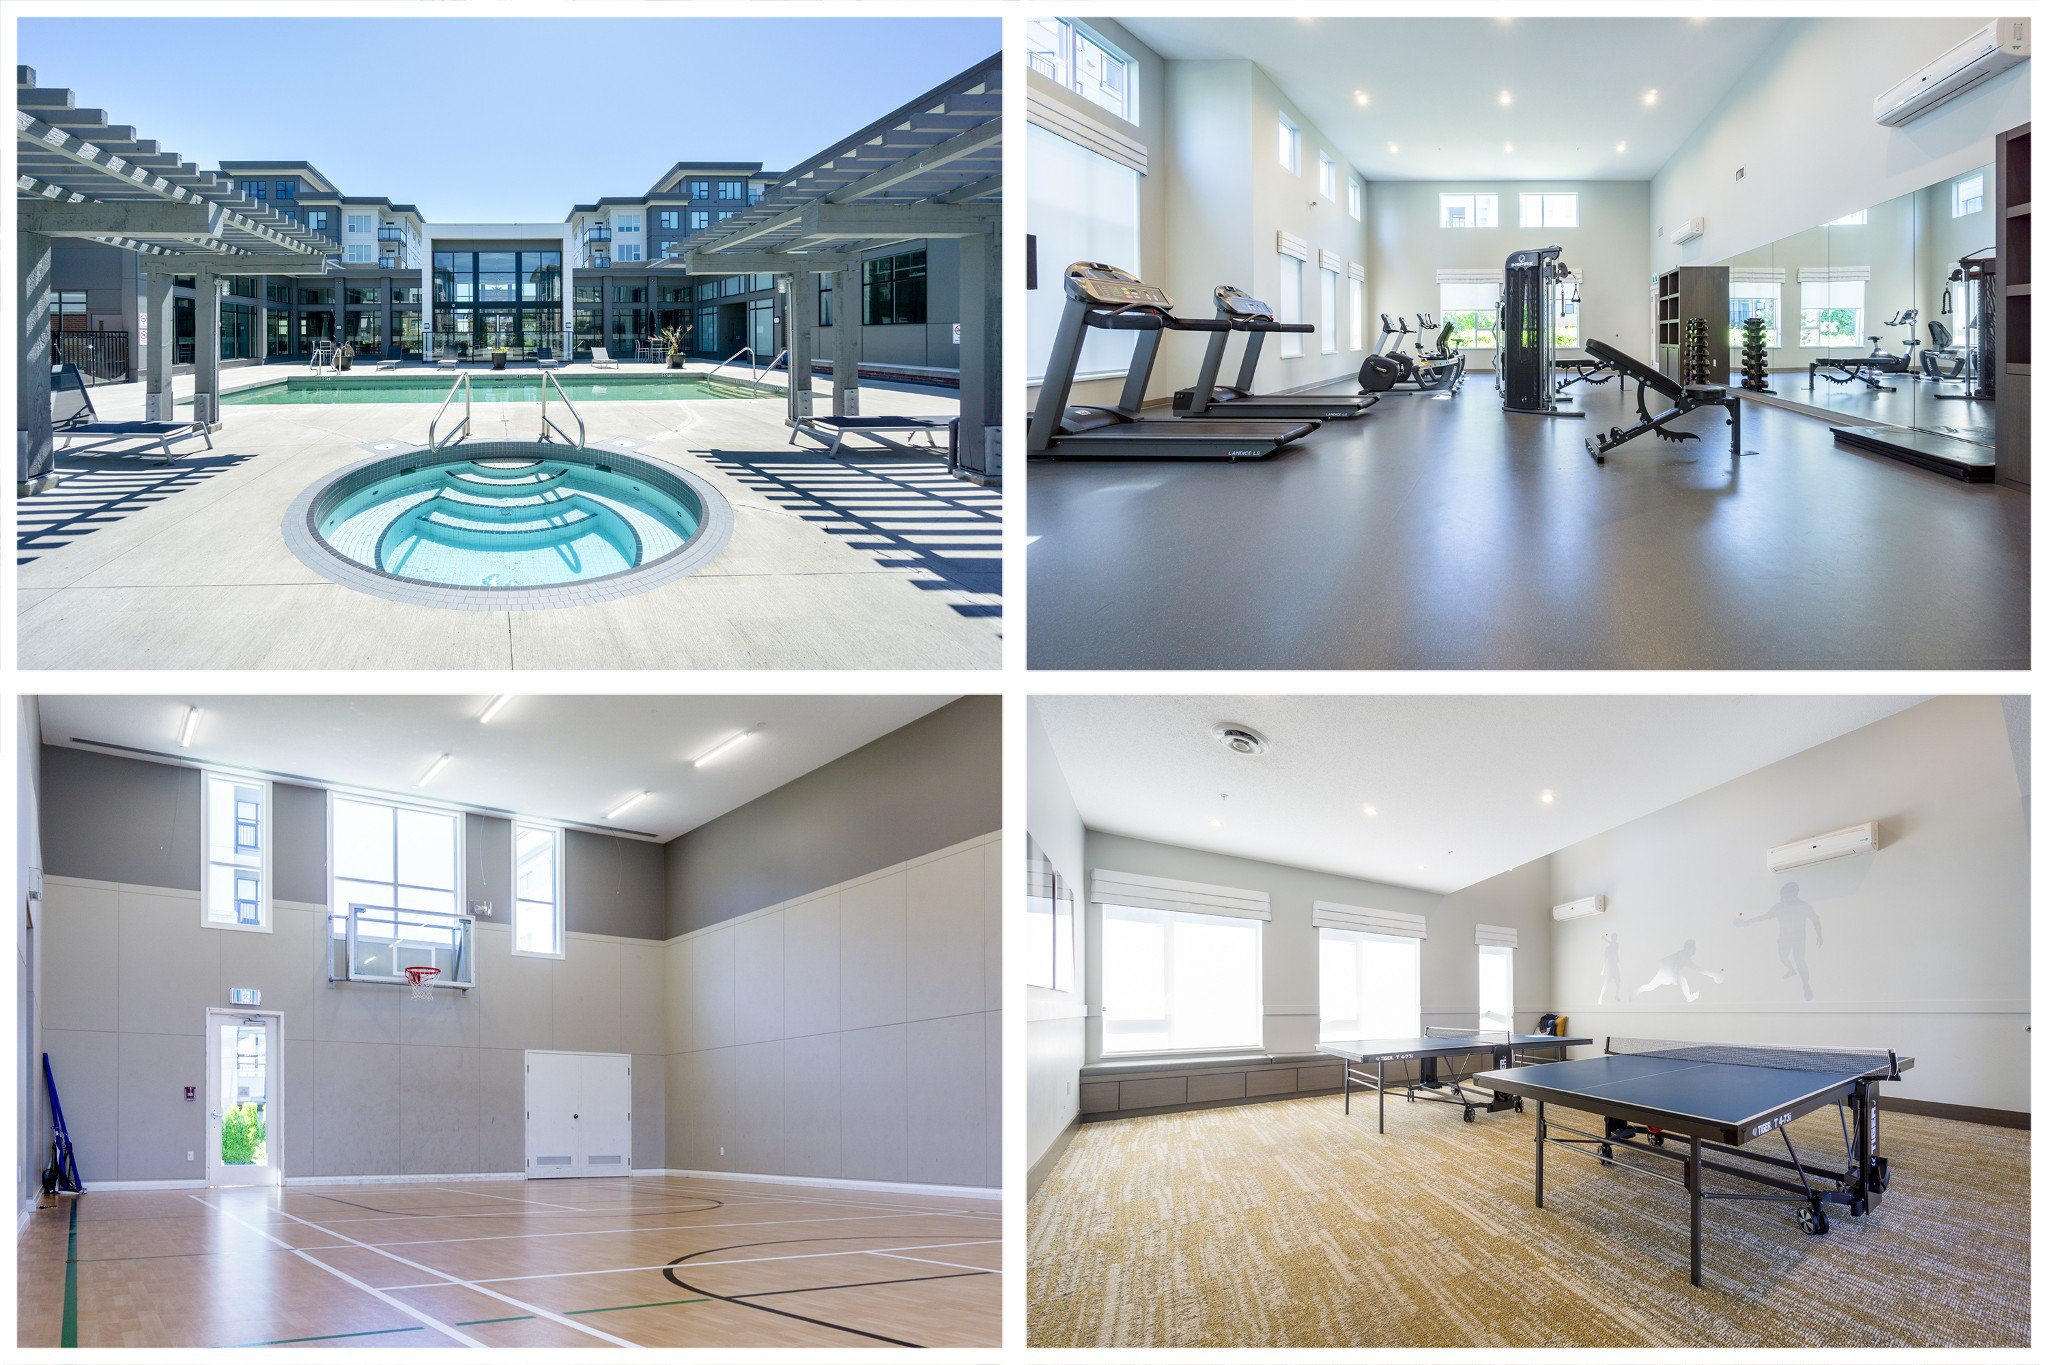 """Photo 45: Photos: 303 9311 ALEXANDRA Road in Richmond: West Cambie Condo for sale in """"ALEXANDRA COURT"""" : MLS®# R2347629"""